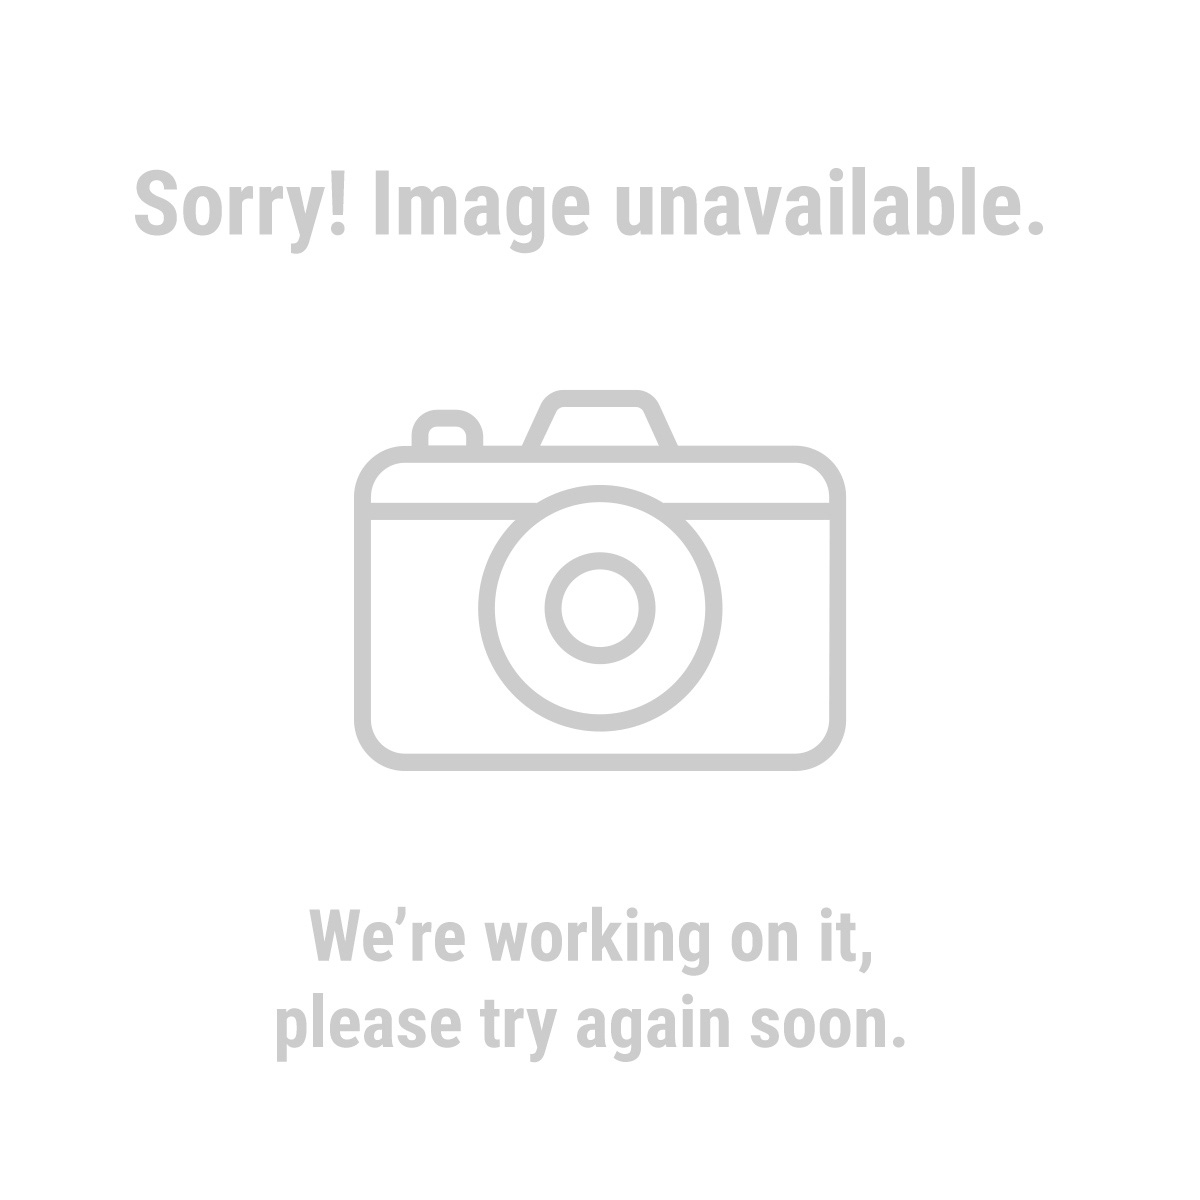 Handstands 98035 Pack of 4 Vent Sticks - Cucumber Melon, Fresh Linen